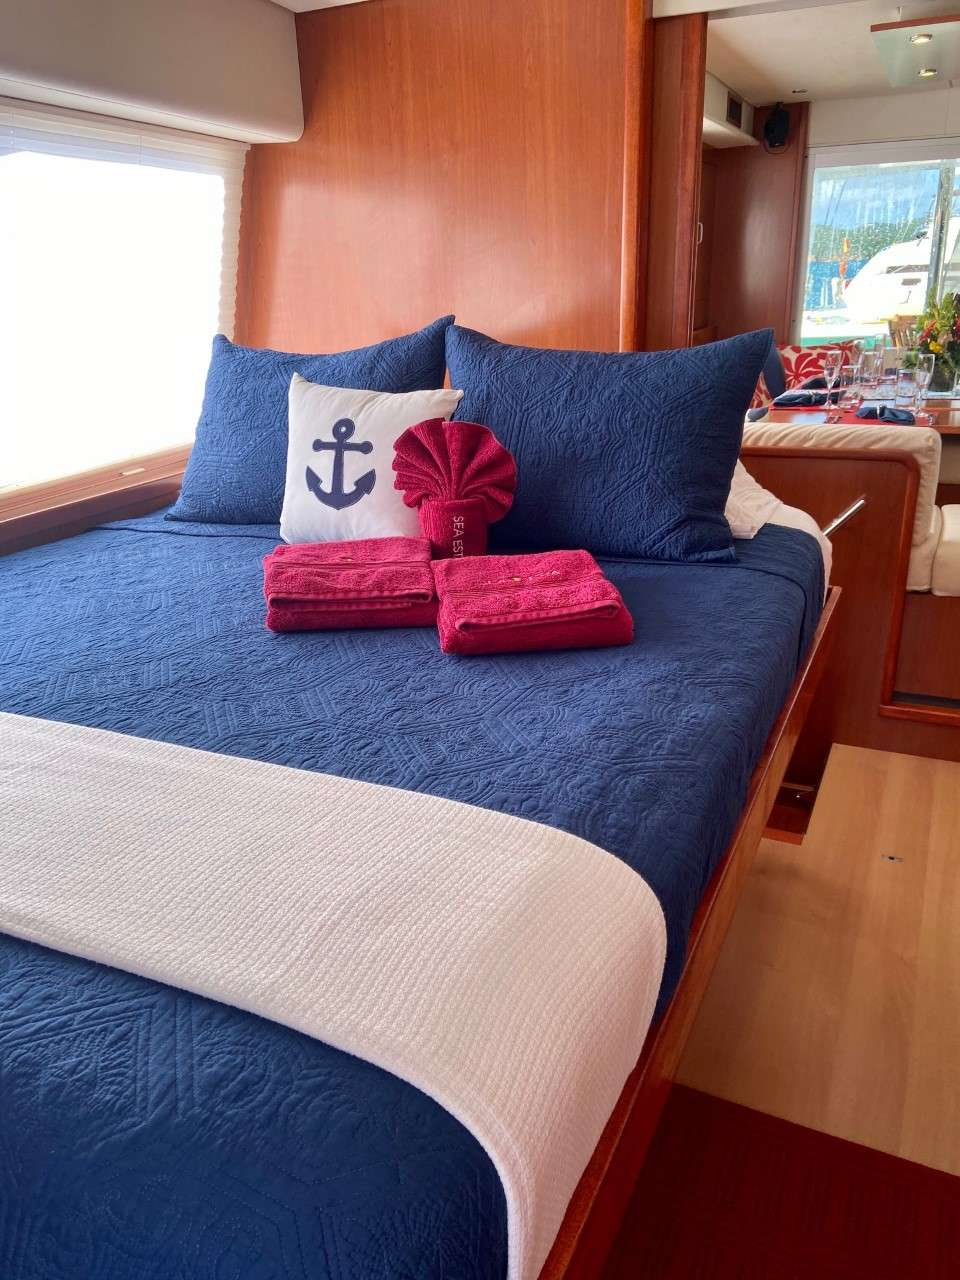 Have the best sleep ever as all staterooms provide memory foam mattress toppers.